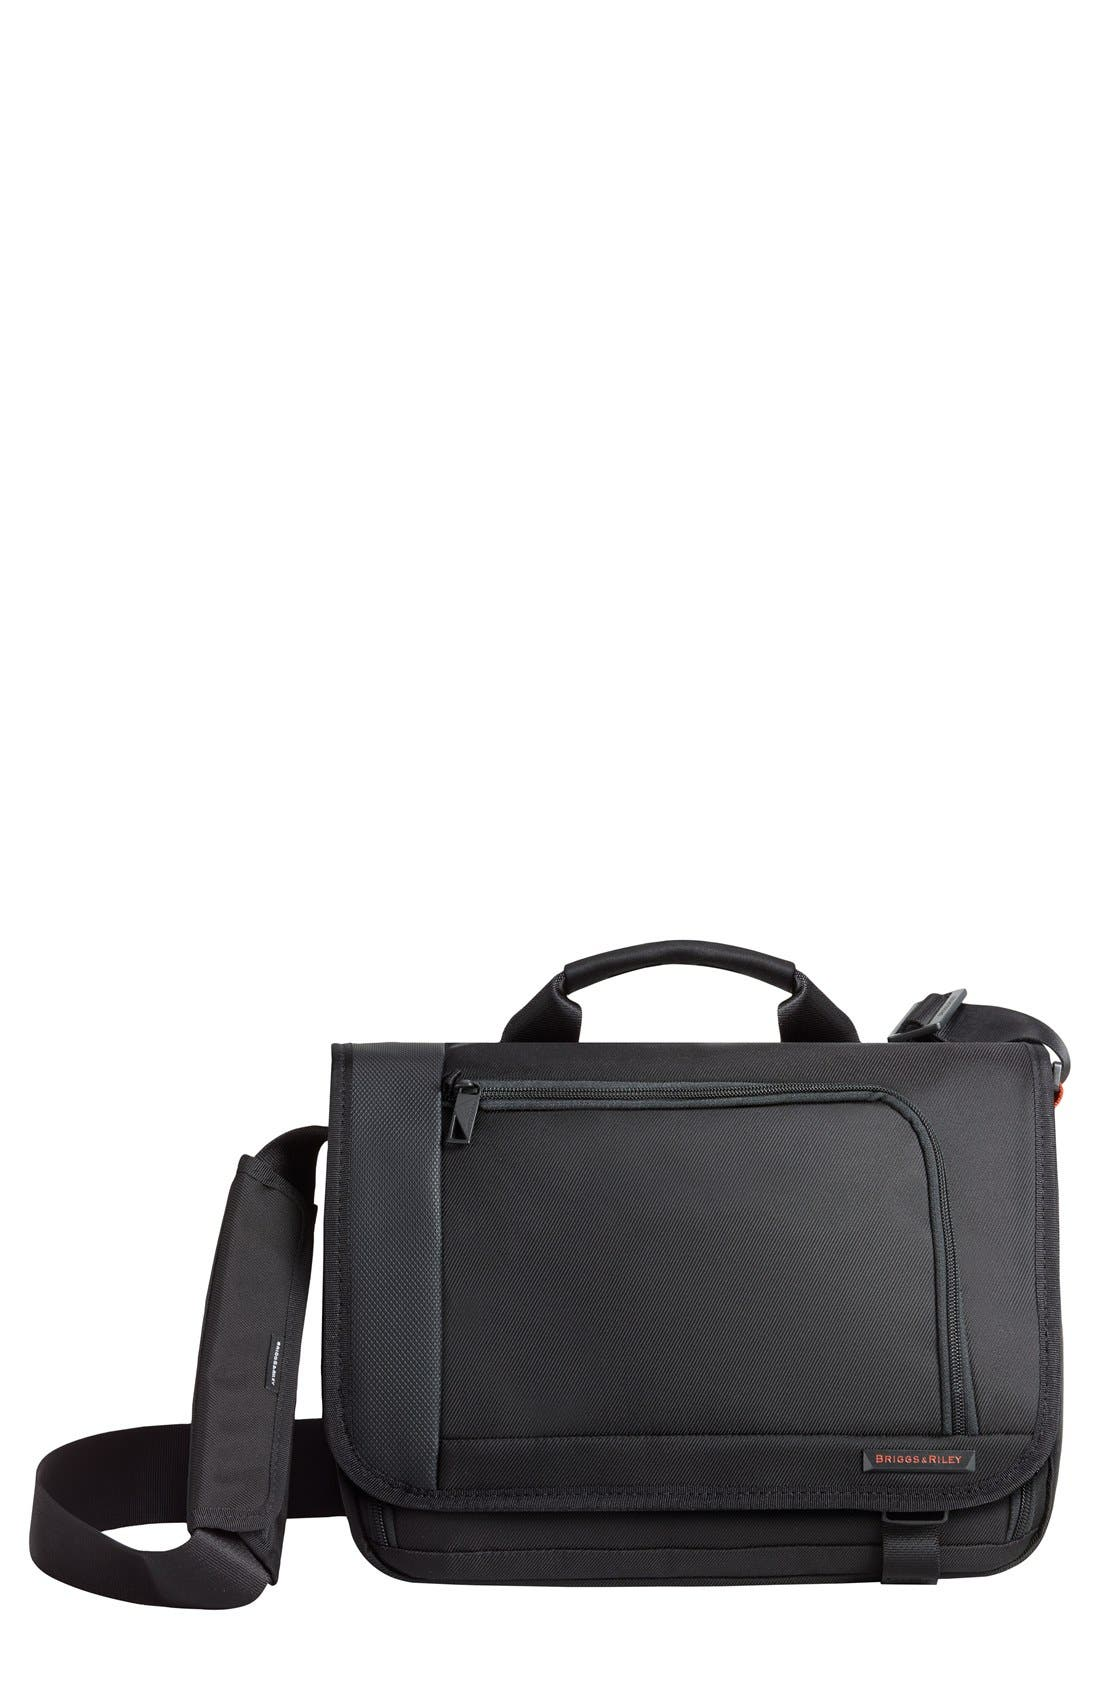 BRIGGS & RILEY Verb - Instant Messenger Bag